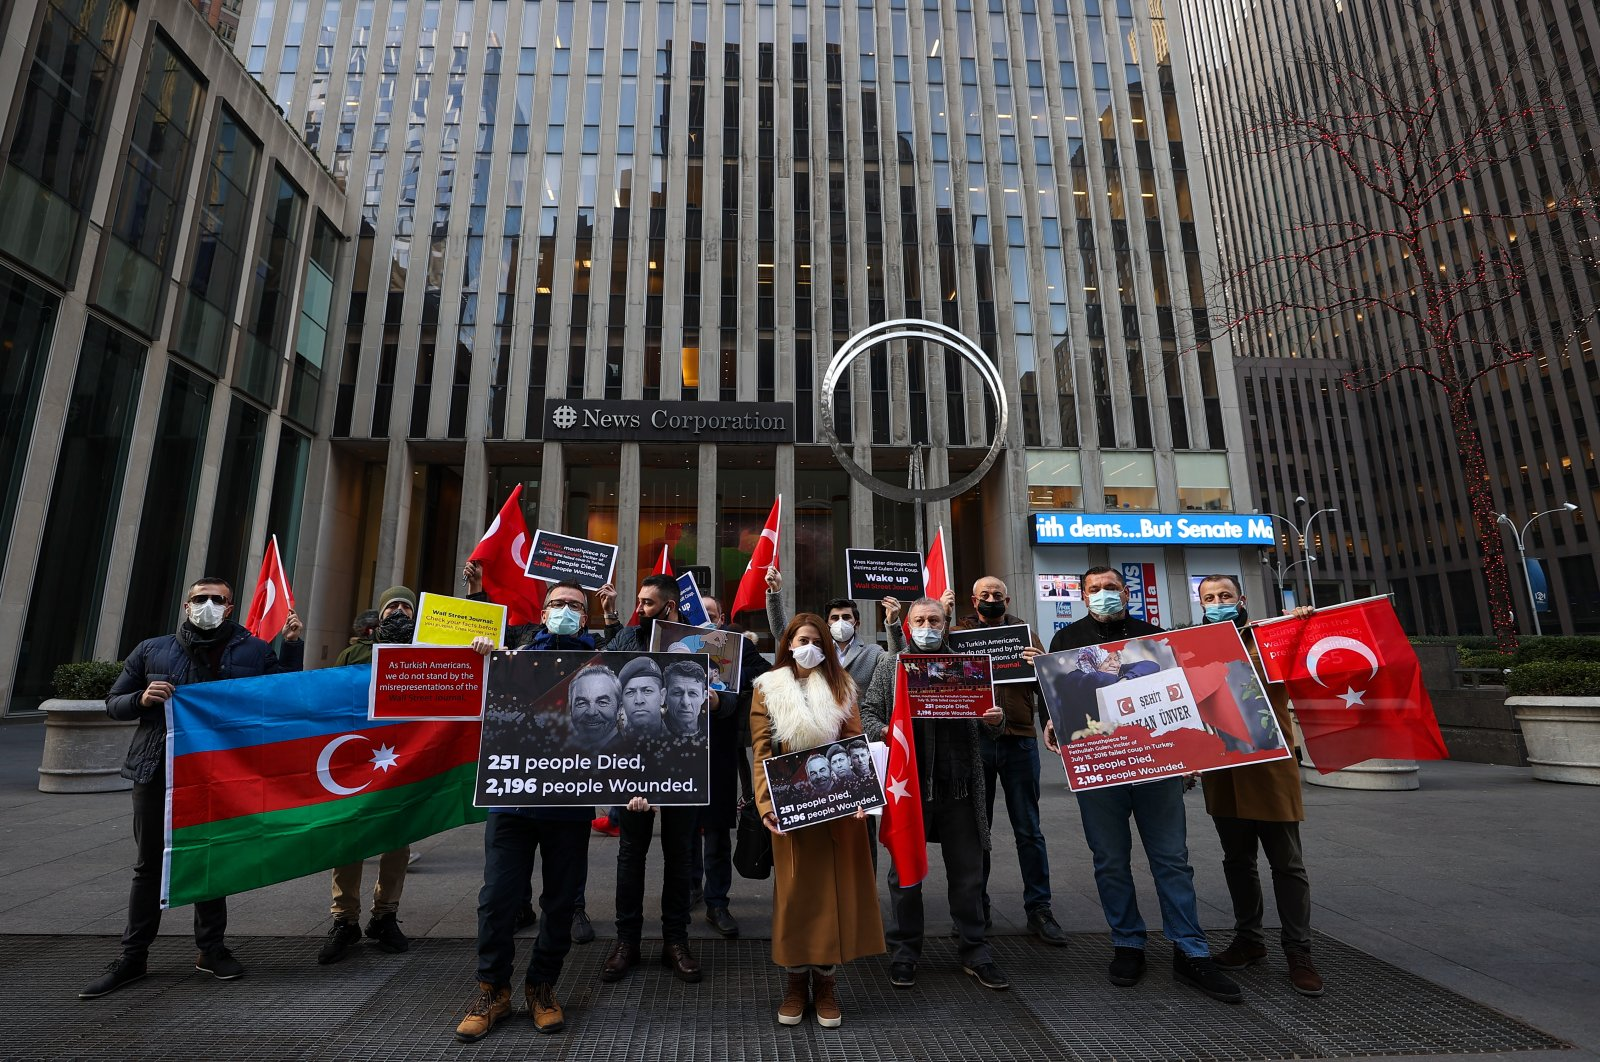 A group of Turkish people protests The Wall Street Journal (WSJ) for providing a platform for Gülenist Terror Group (FETÖ) supporter Enes Kanter, in front of the WSJ headquarters in New York, U.S., Jan. 15, 2021. (AA Photo)